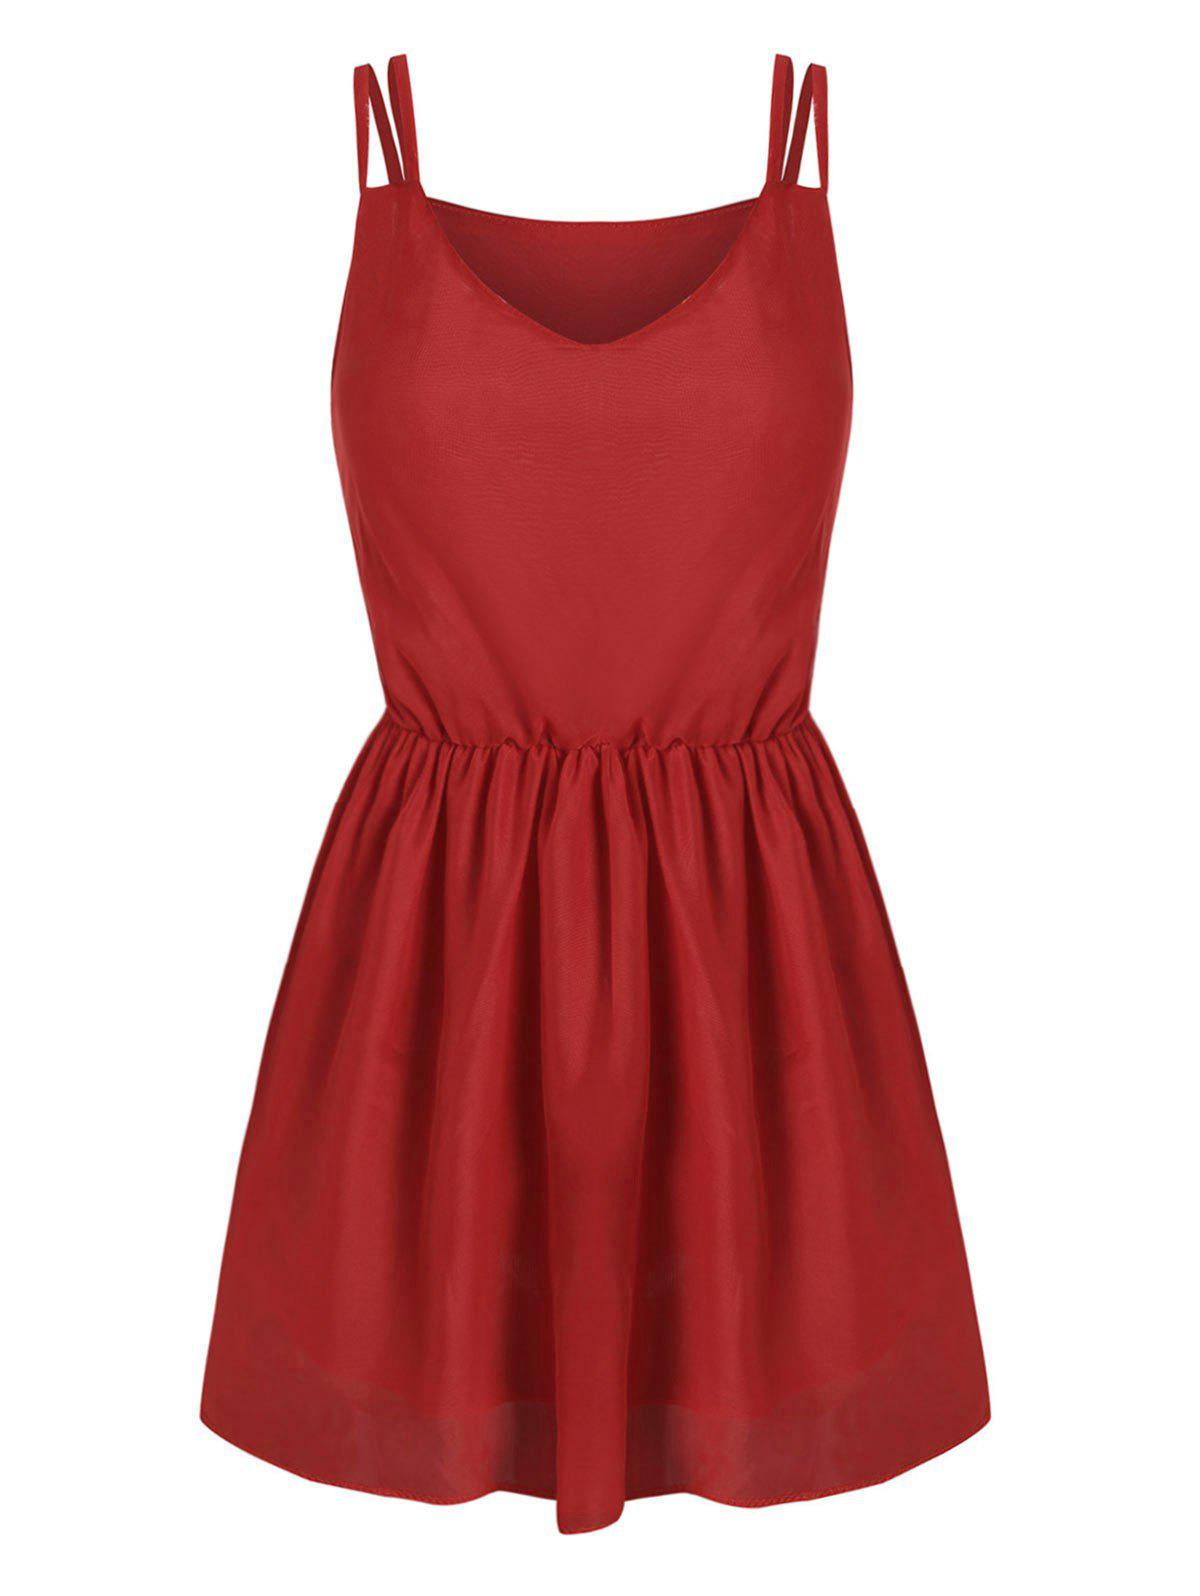 Solid Color Mini Strappy Dress - RED S